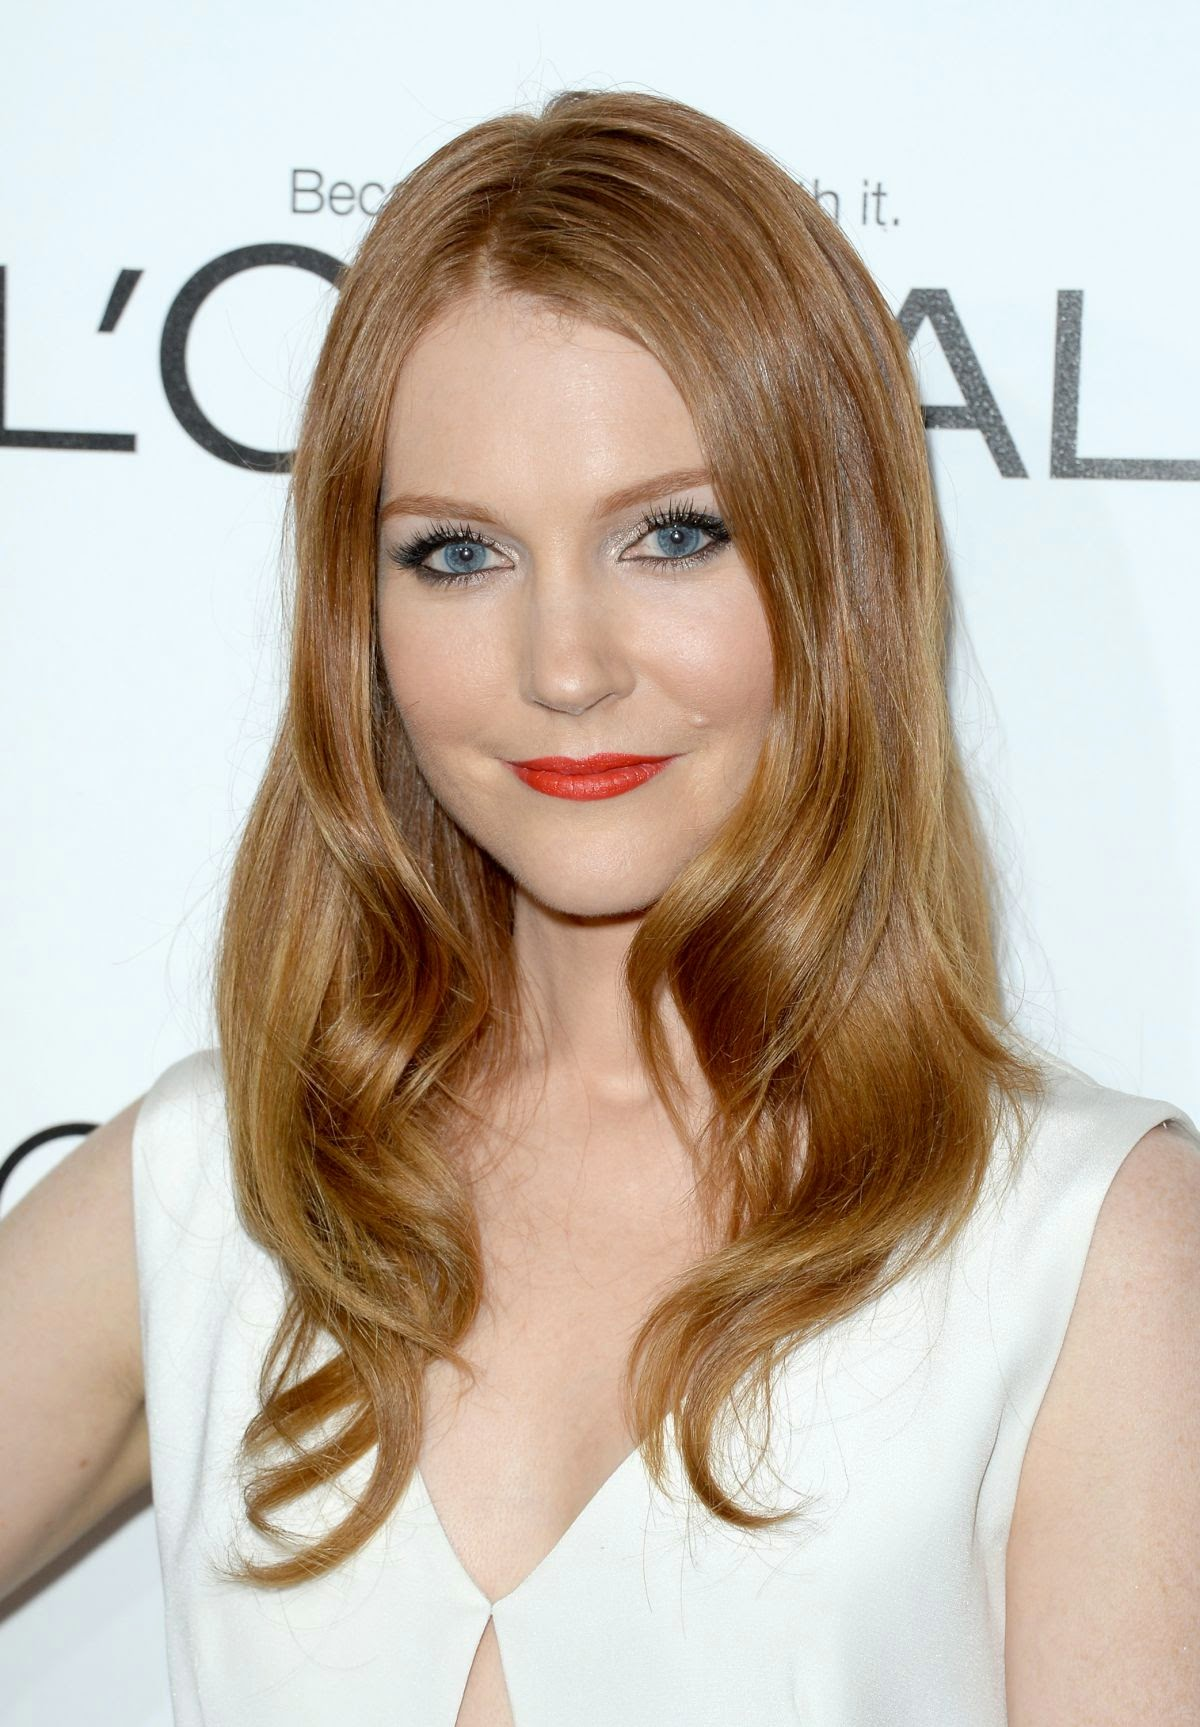 Darby Stanchfield Nude Photos 2